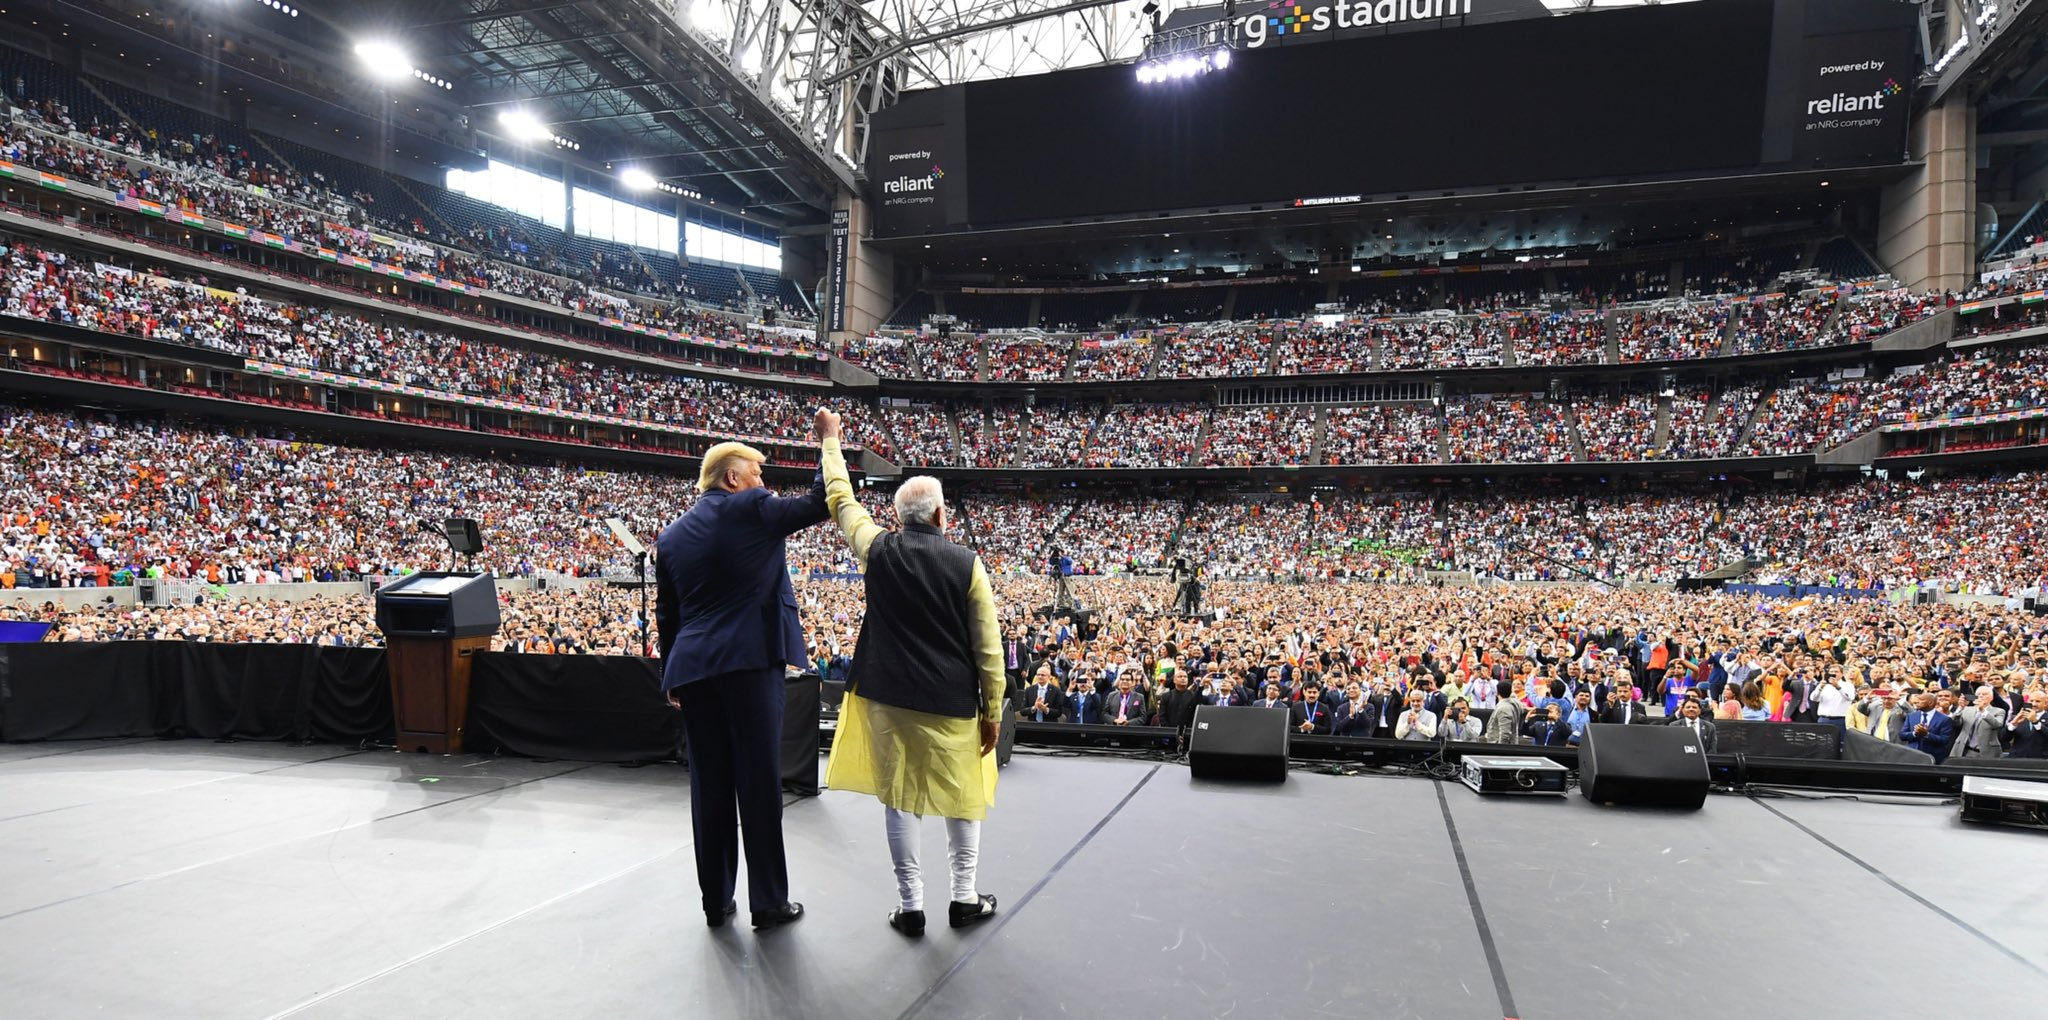 Highlights of Howdy Modi in Houston - Trump Says The USA Loves India